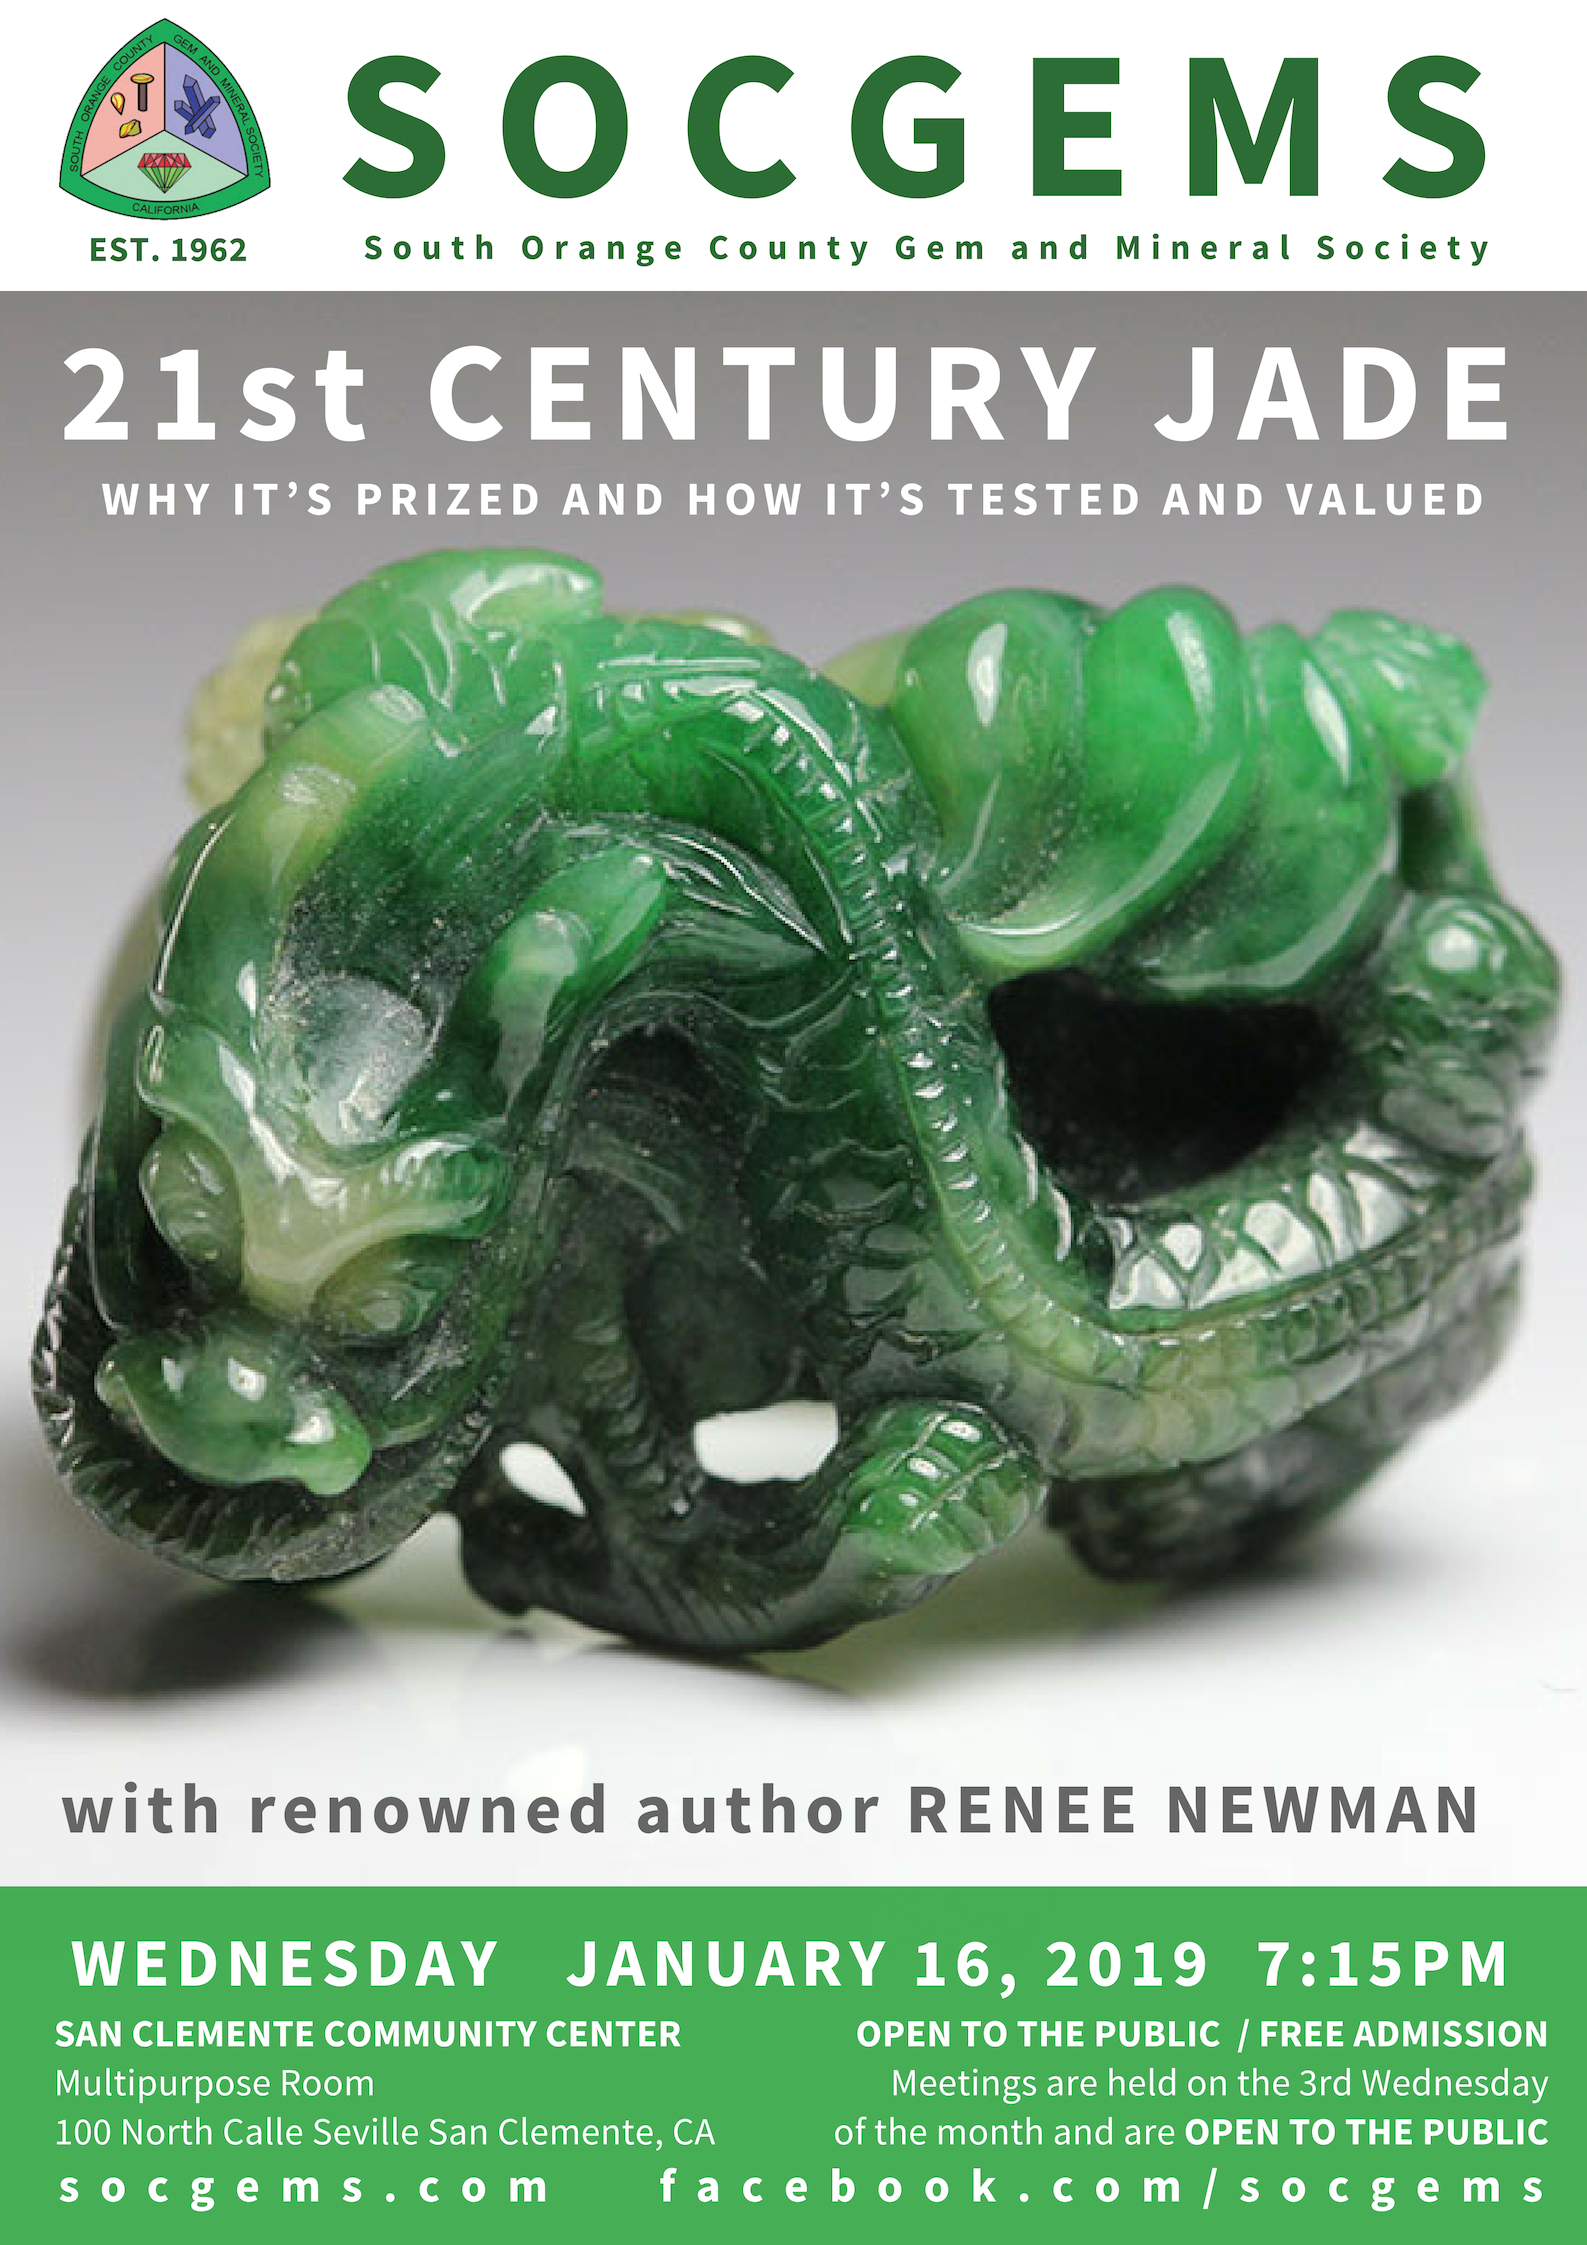 renee newman jan 2019 jade